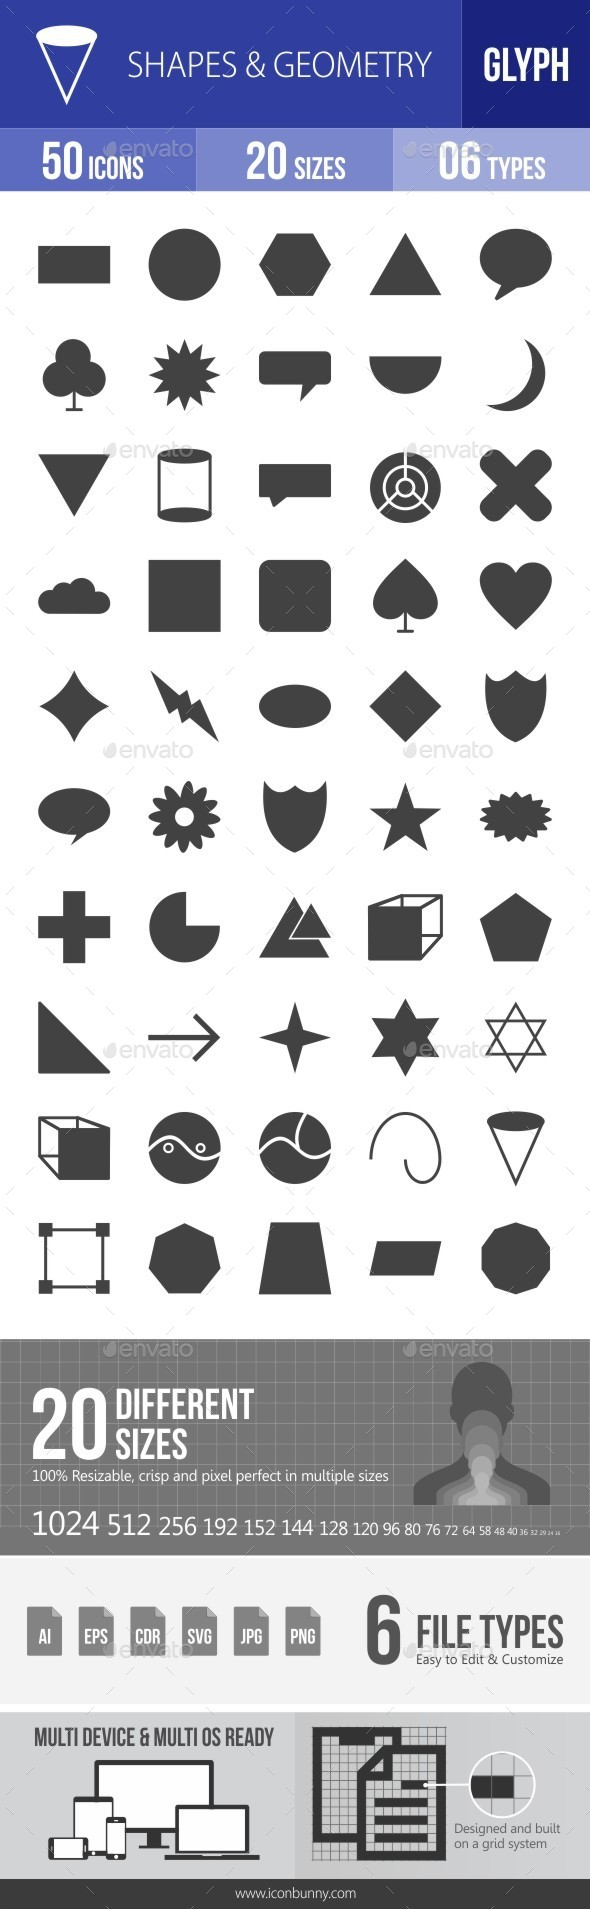 Shapes & Geometry Glyph Icons - Icons